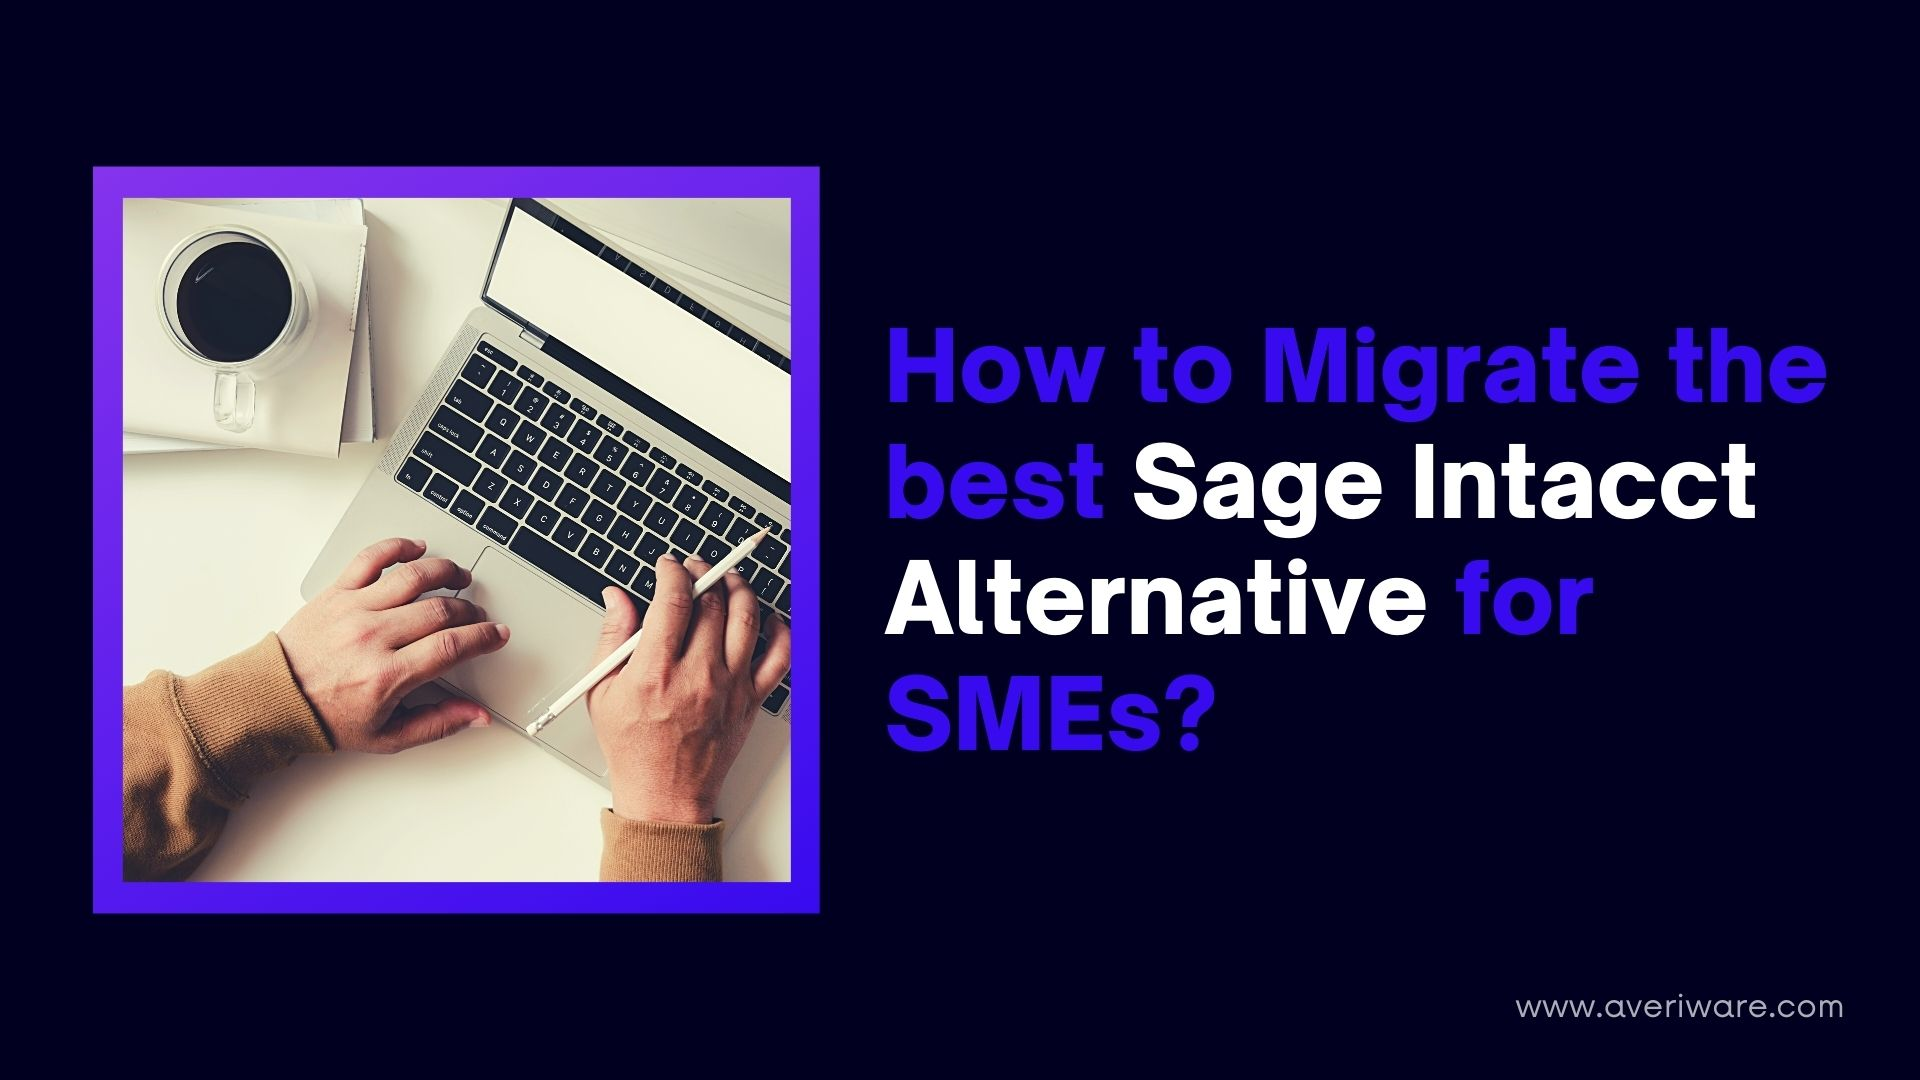 How to Migrate the best Sage Intacct Alternative for SMEs?